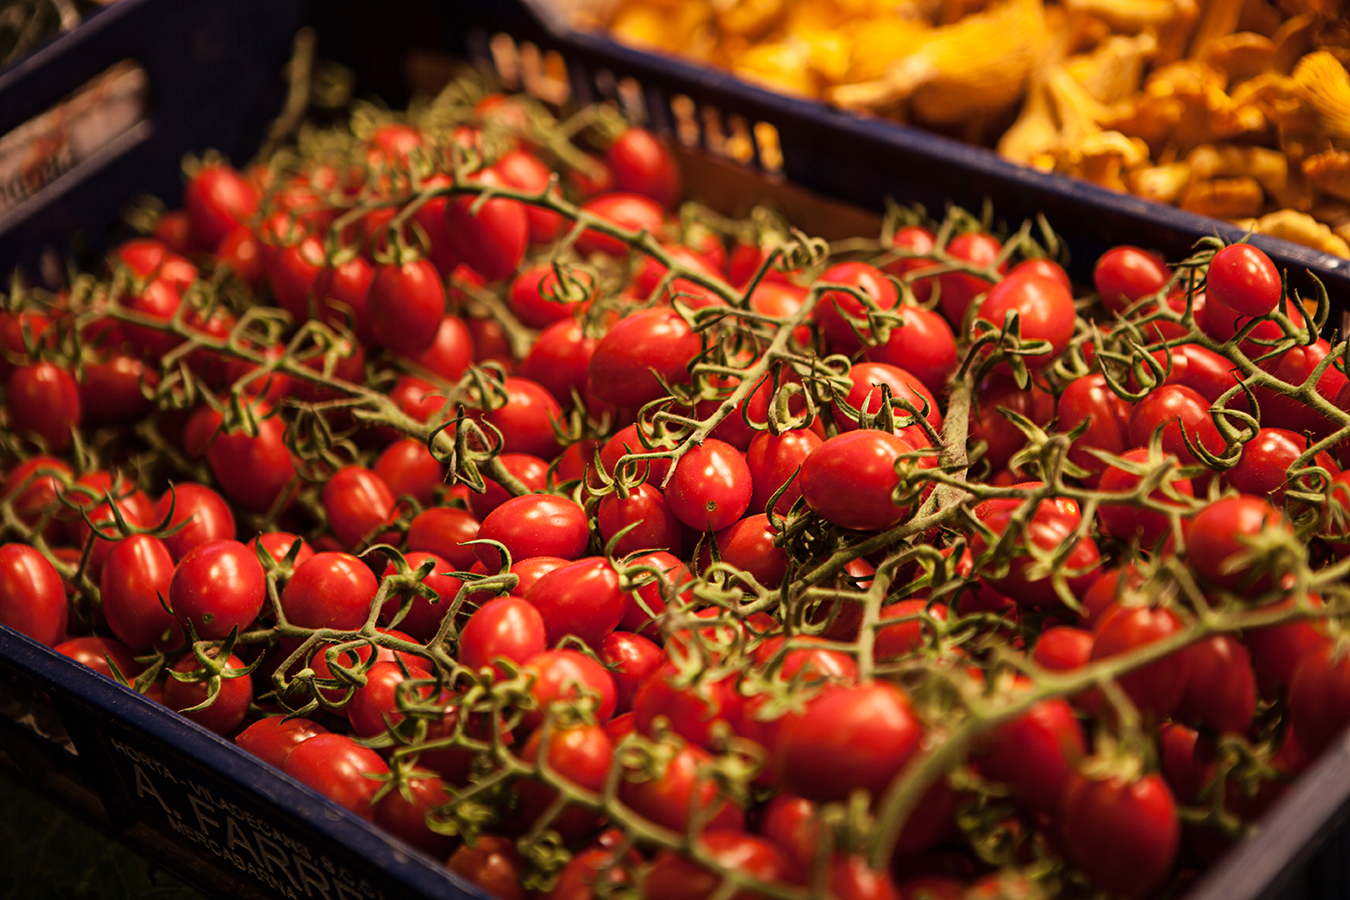 Tomatos • Mercado de La Boqueria • Barcelona, Spain